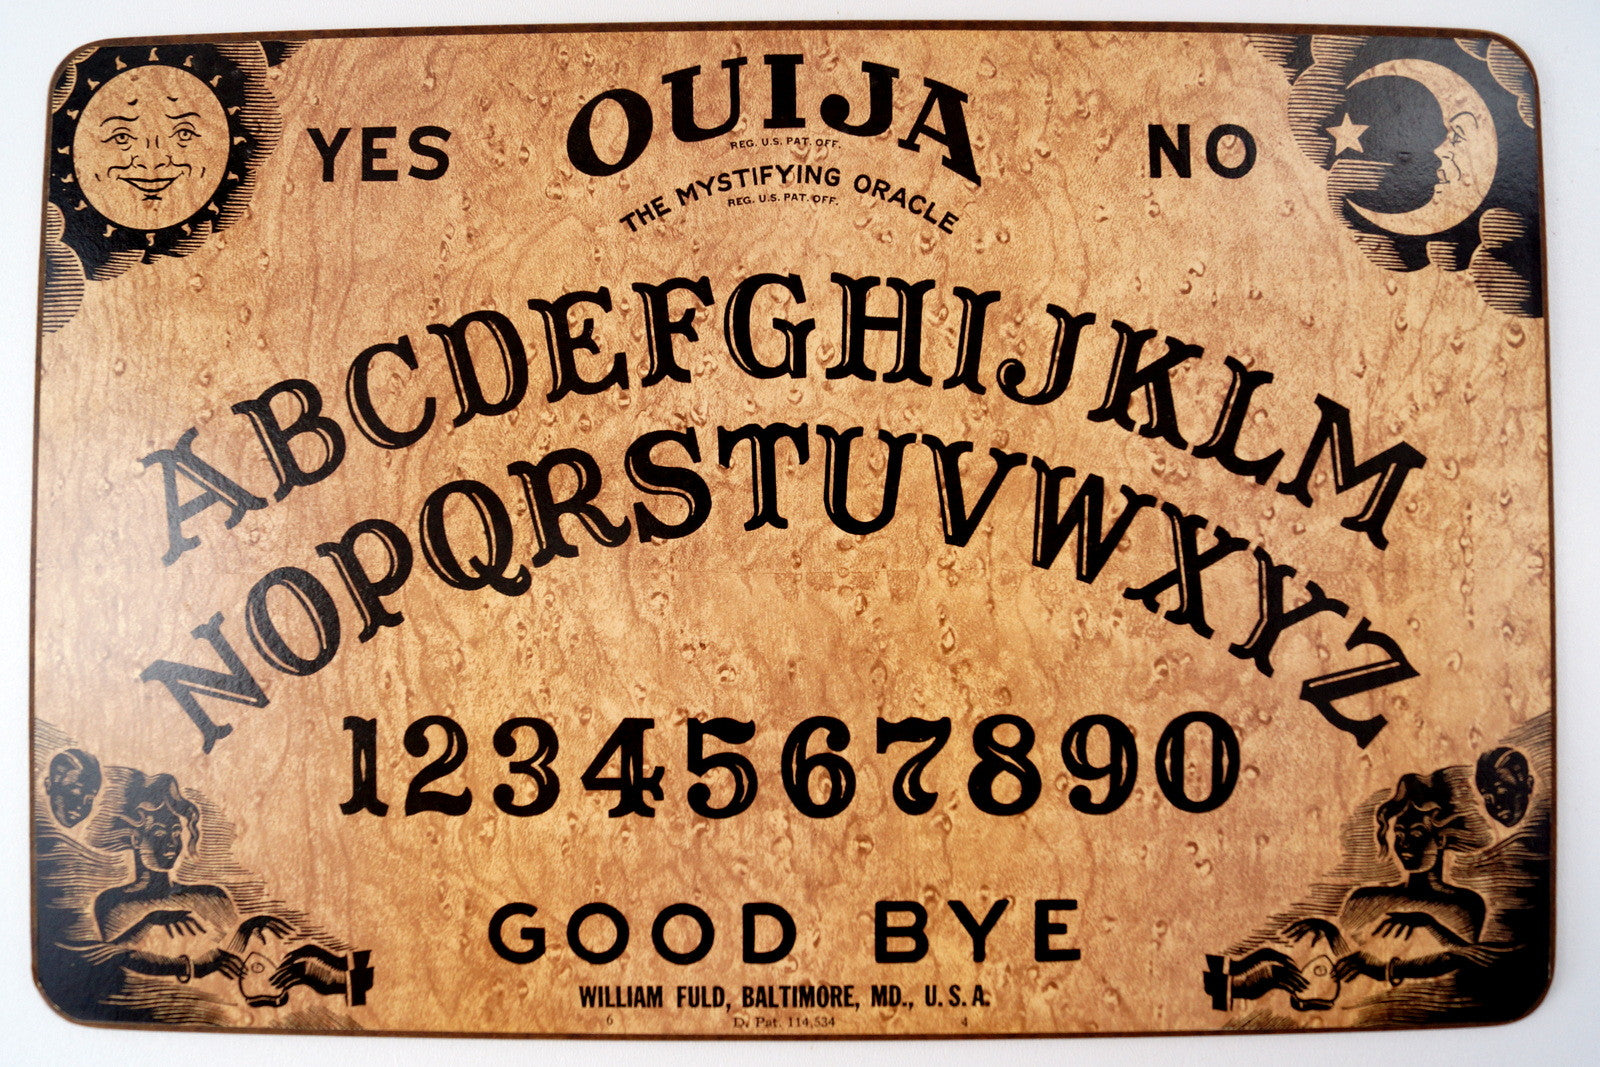 Vintage Original Ouija Board by William Fuld (c.1930,40s) N1